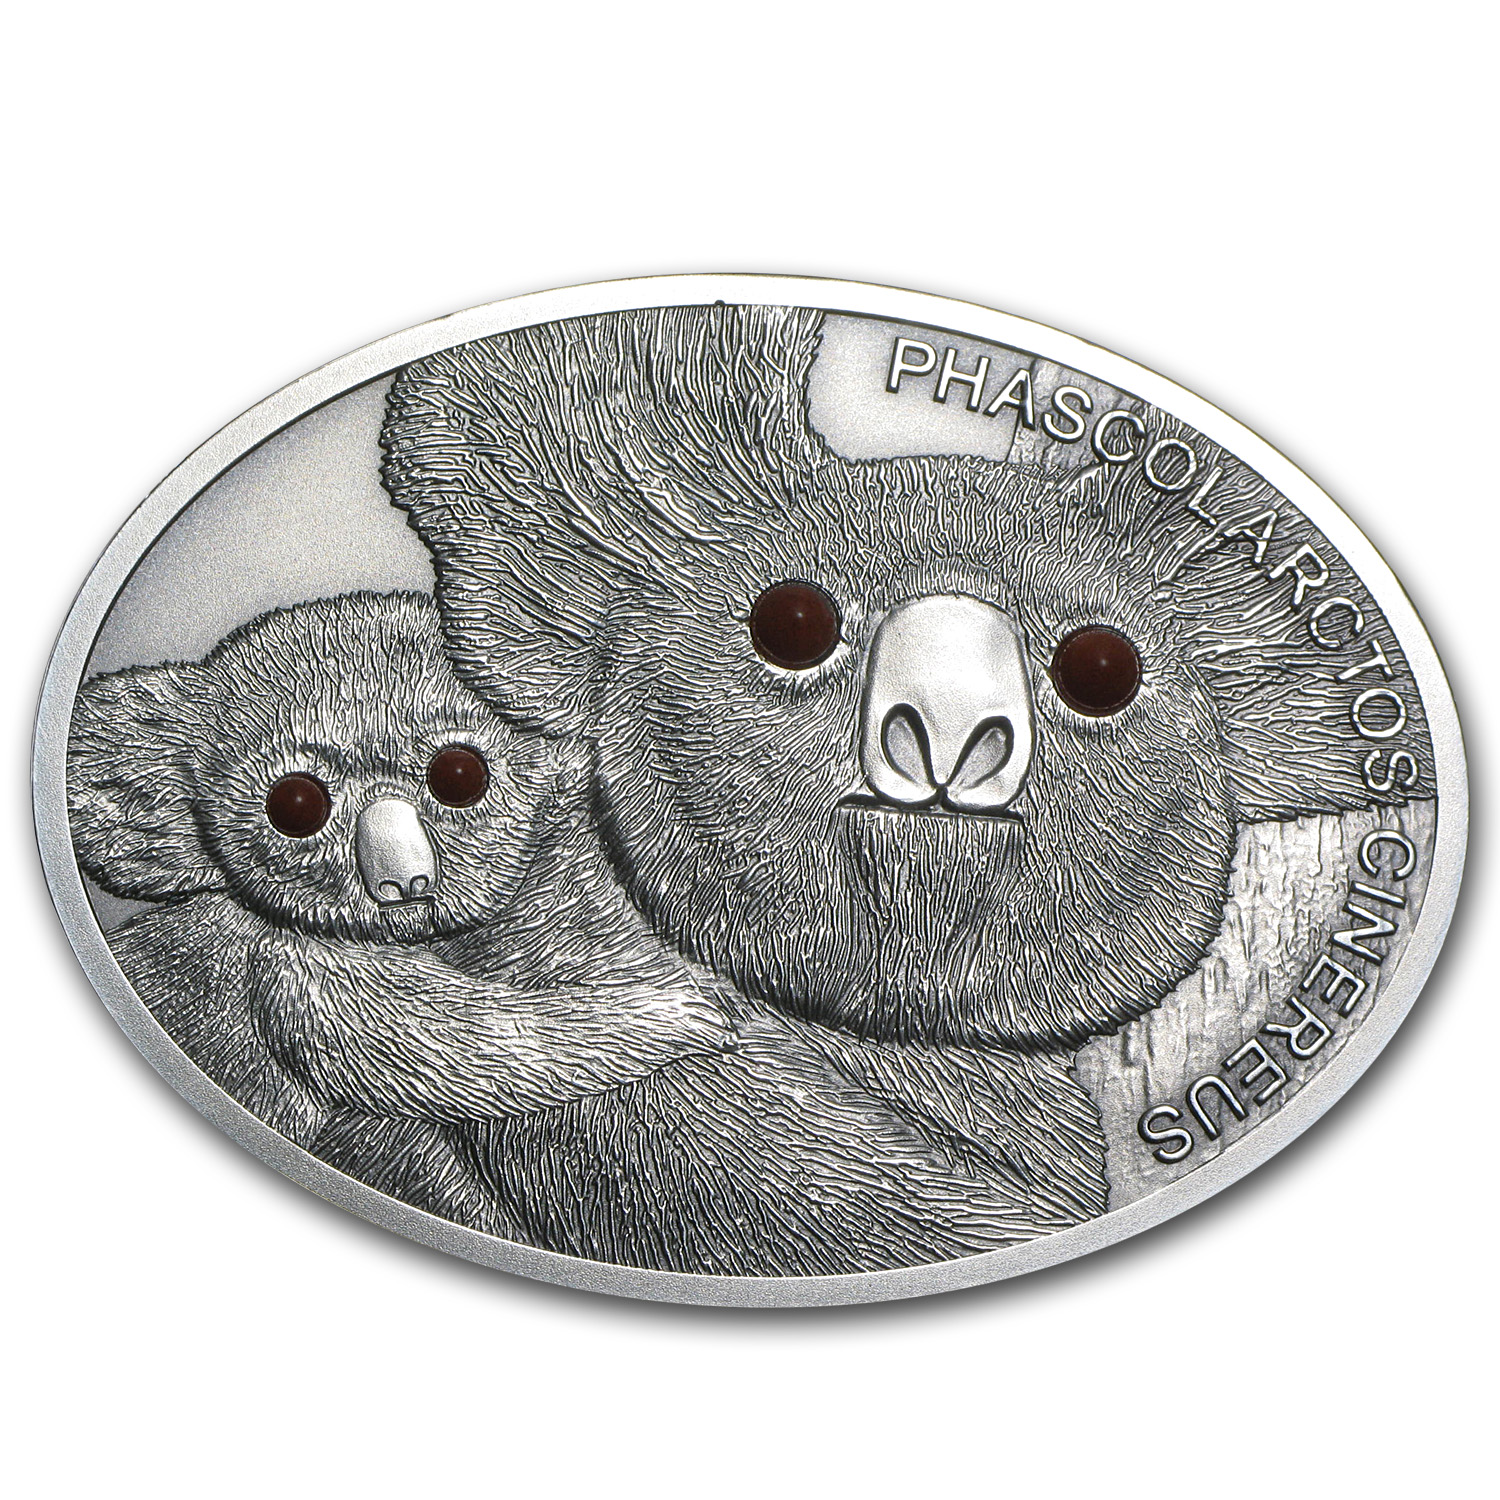 Fiji 2013 1 oz Silver $10 Fascinating Wildlife - Koala